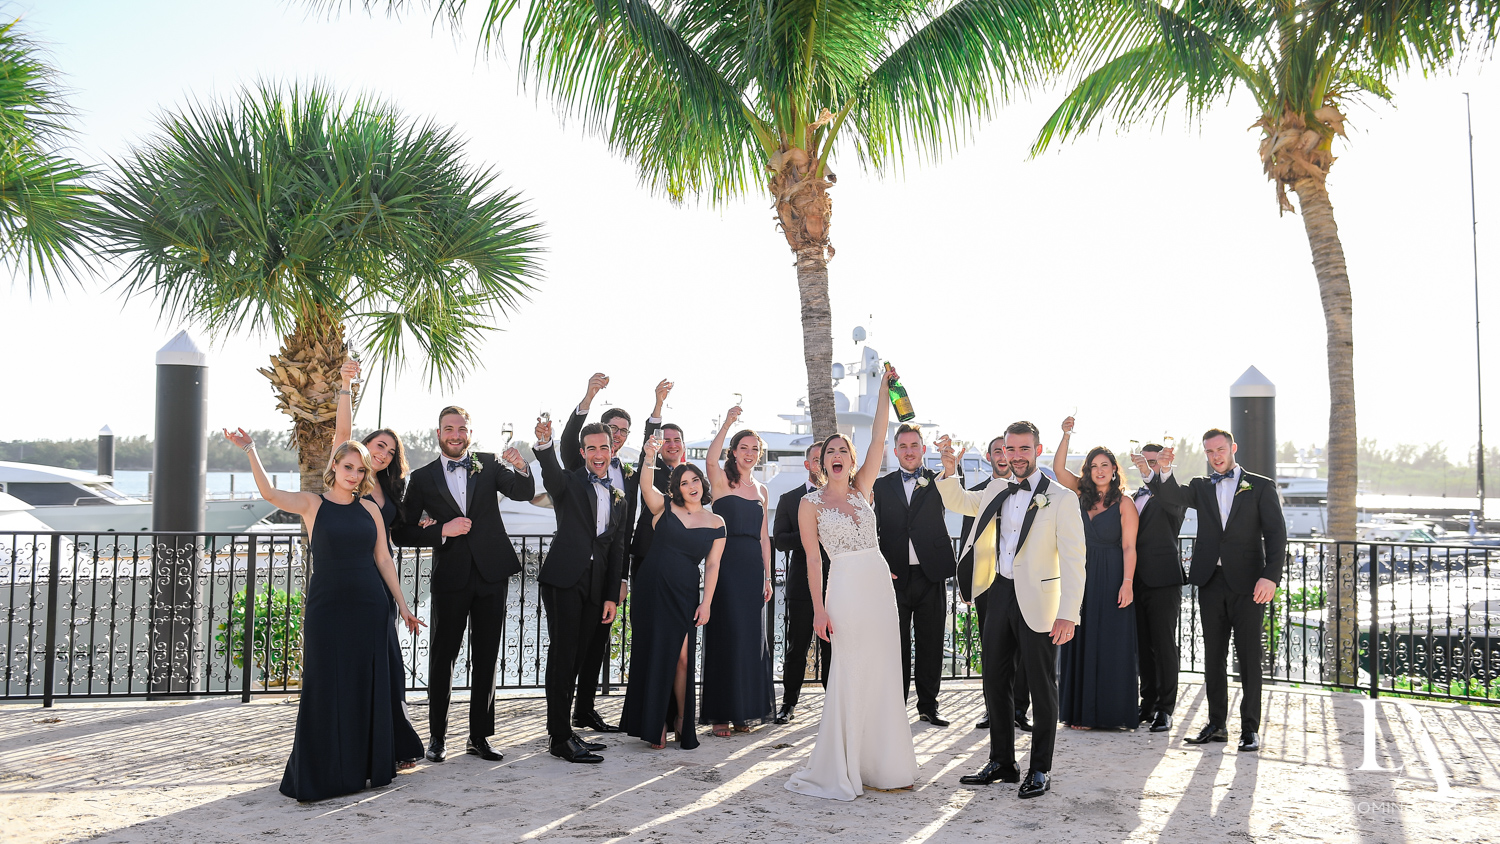 bridal party fun at Tropical Garden Wedding at Fisher Island Miami by Domino Arts Photography